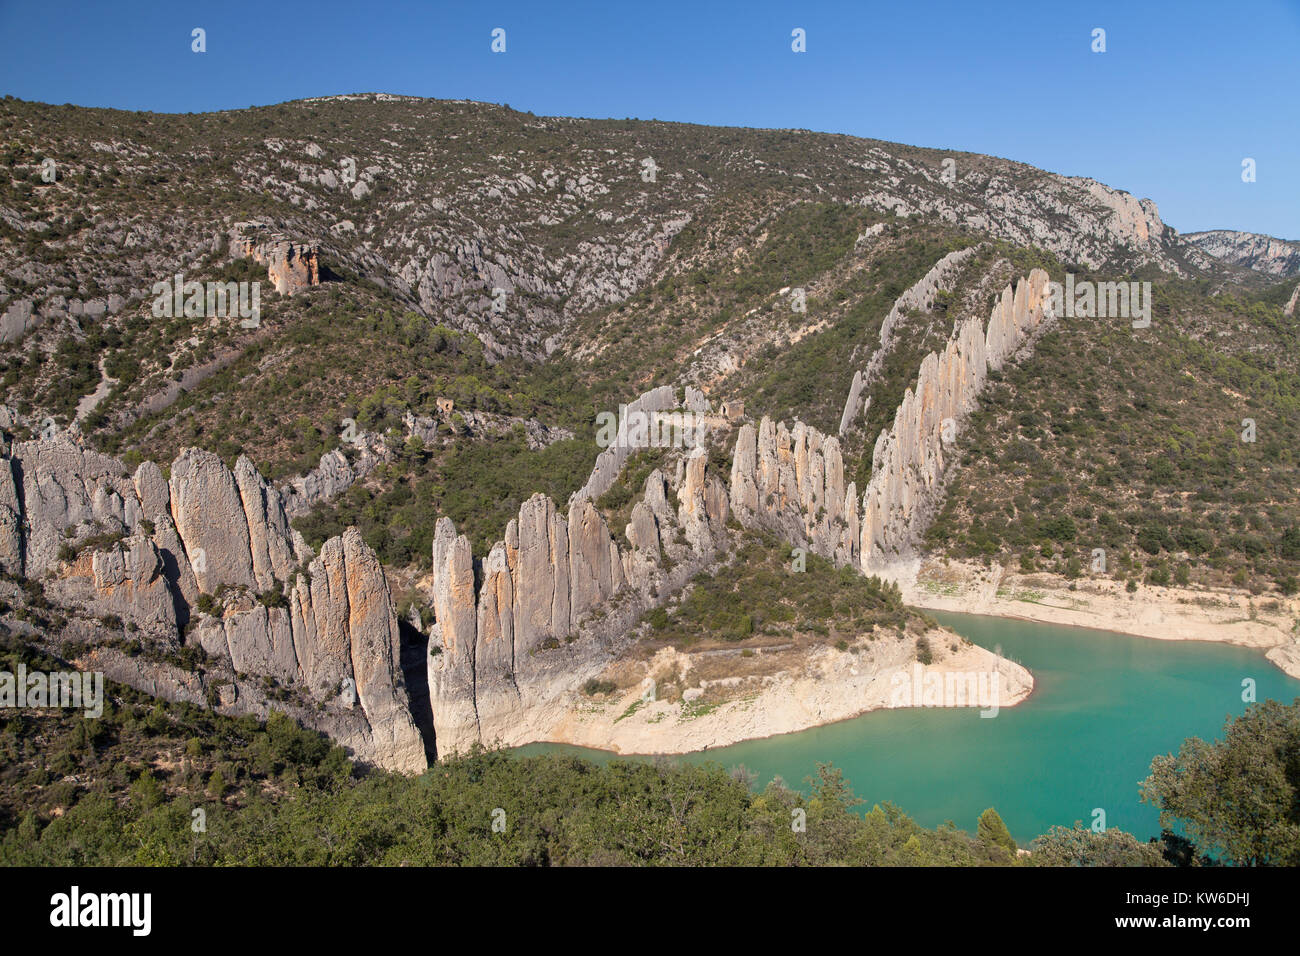 Chinese Wall of Finestres, Huesca province, Aragon, Spain. - Stock Image